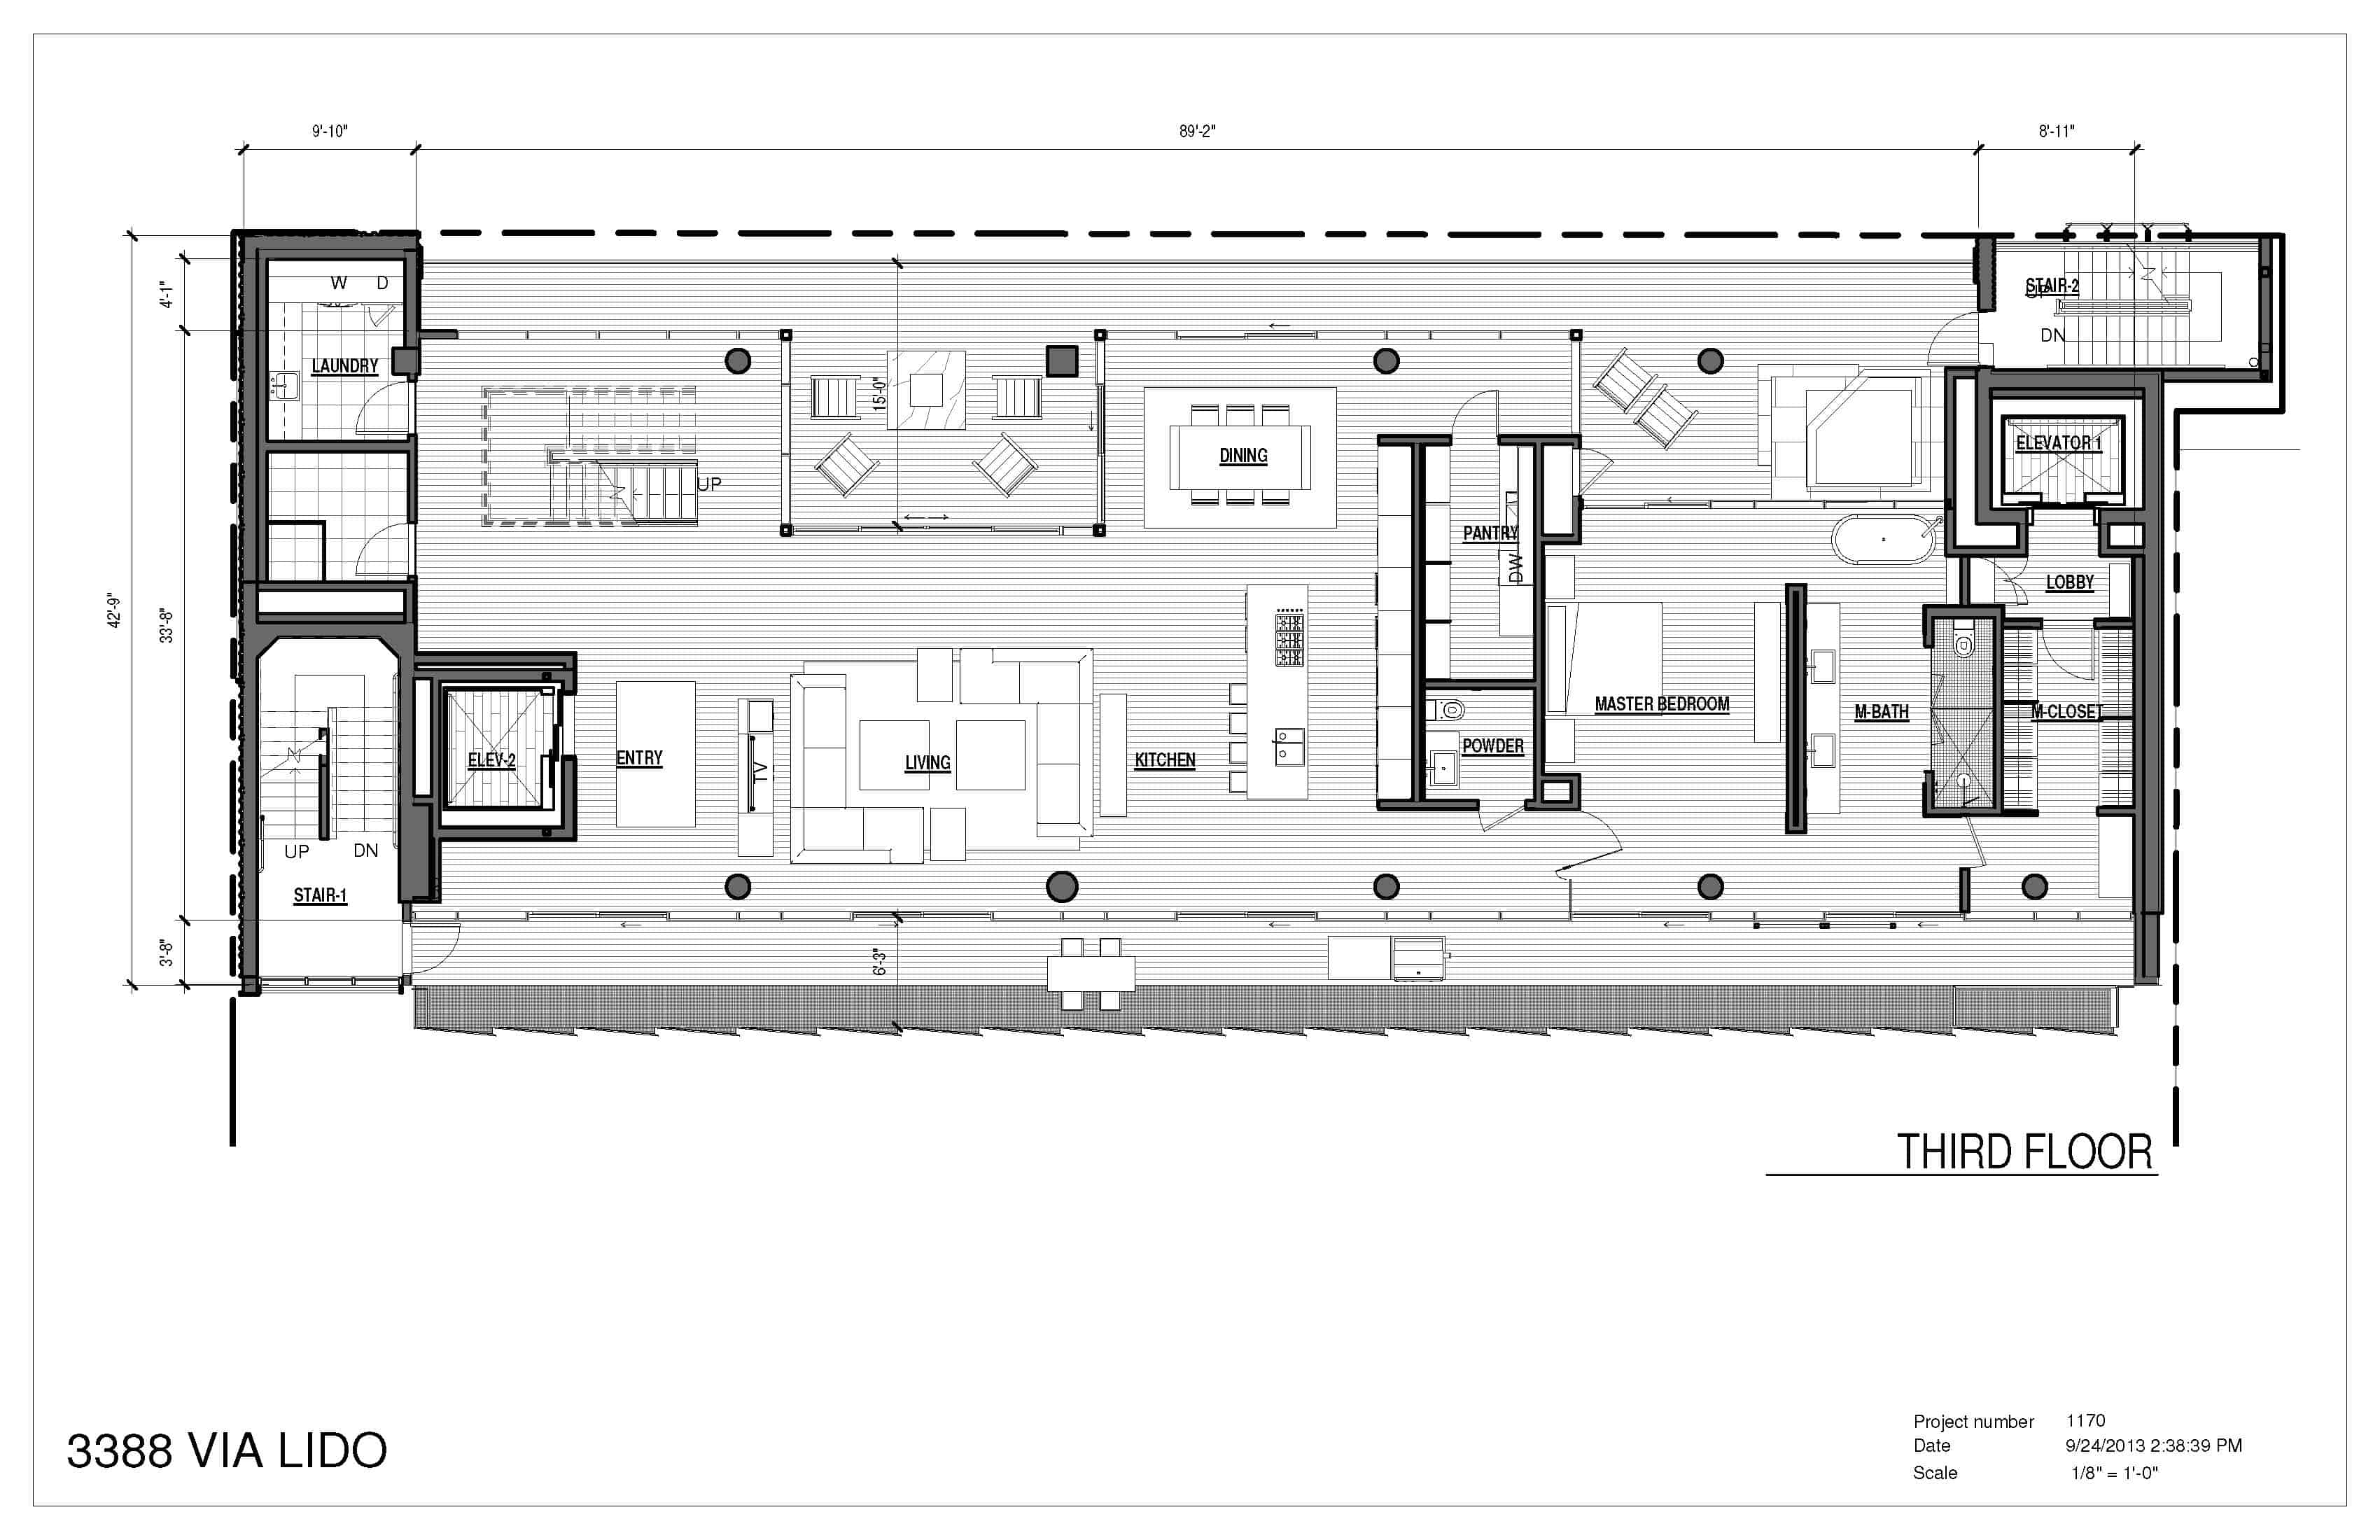 0934_3388 Via Lido_130924_3388 Via Lido_clean floor plans_Page_1